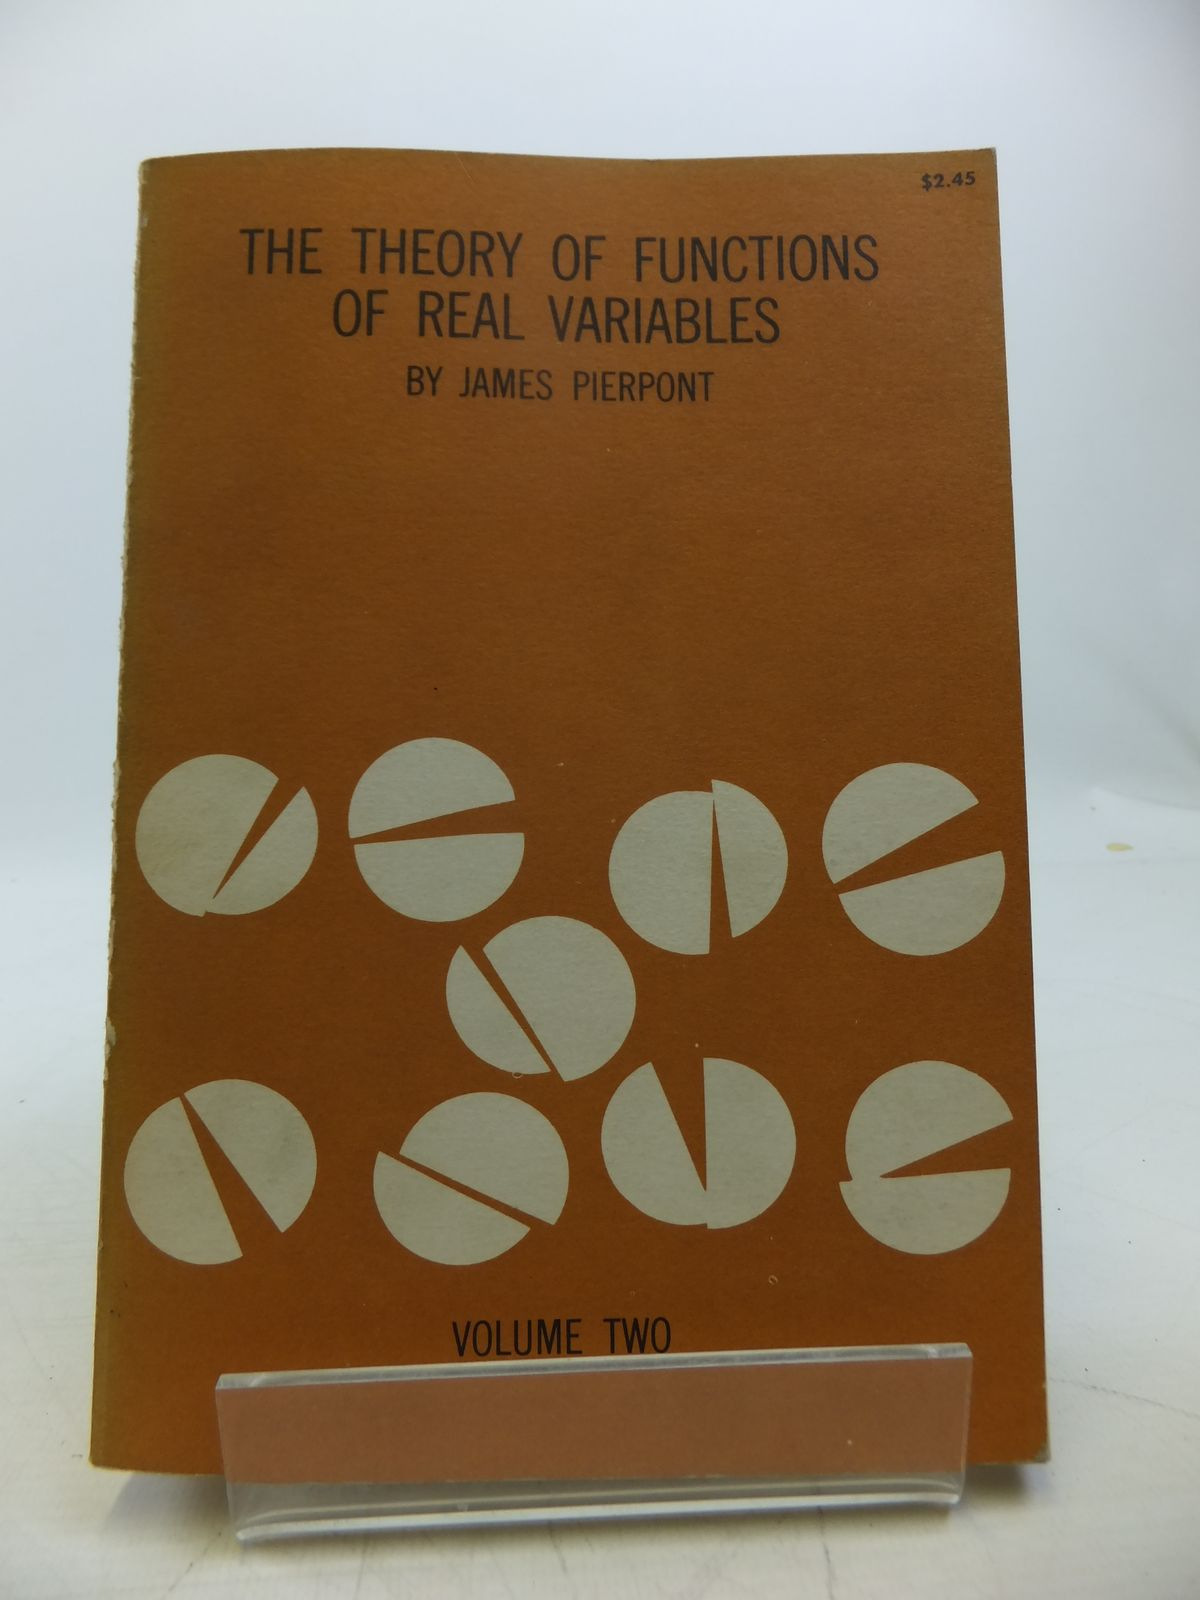 Photo of LECTURES ON THE THEORY OF FUNCTIONS OF REAL VARIABLES VOLUME II written by Pierpont, James published by Dover Publications Inc. (STOCK CODE: 1811418)  for sale by Stella & Rose's Books